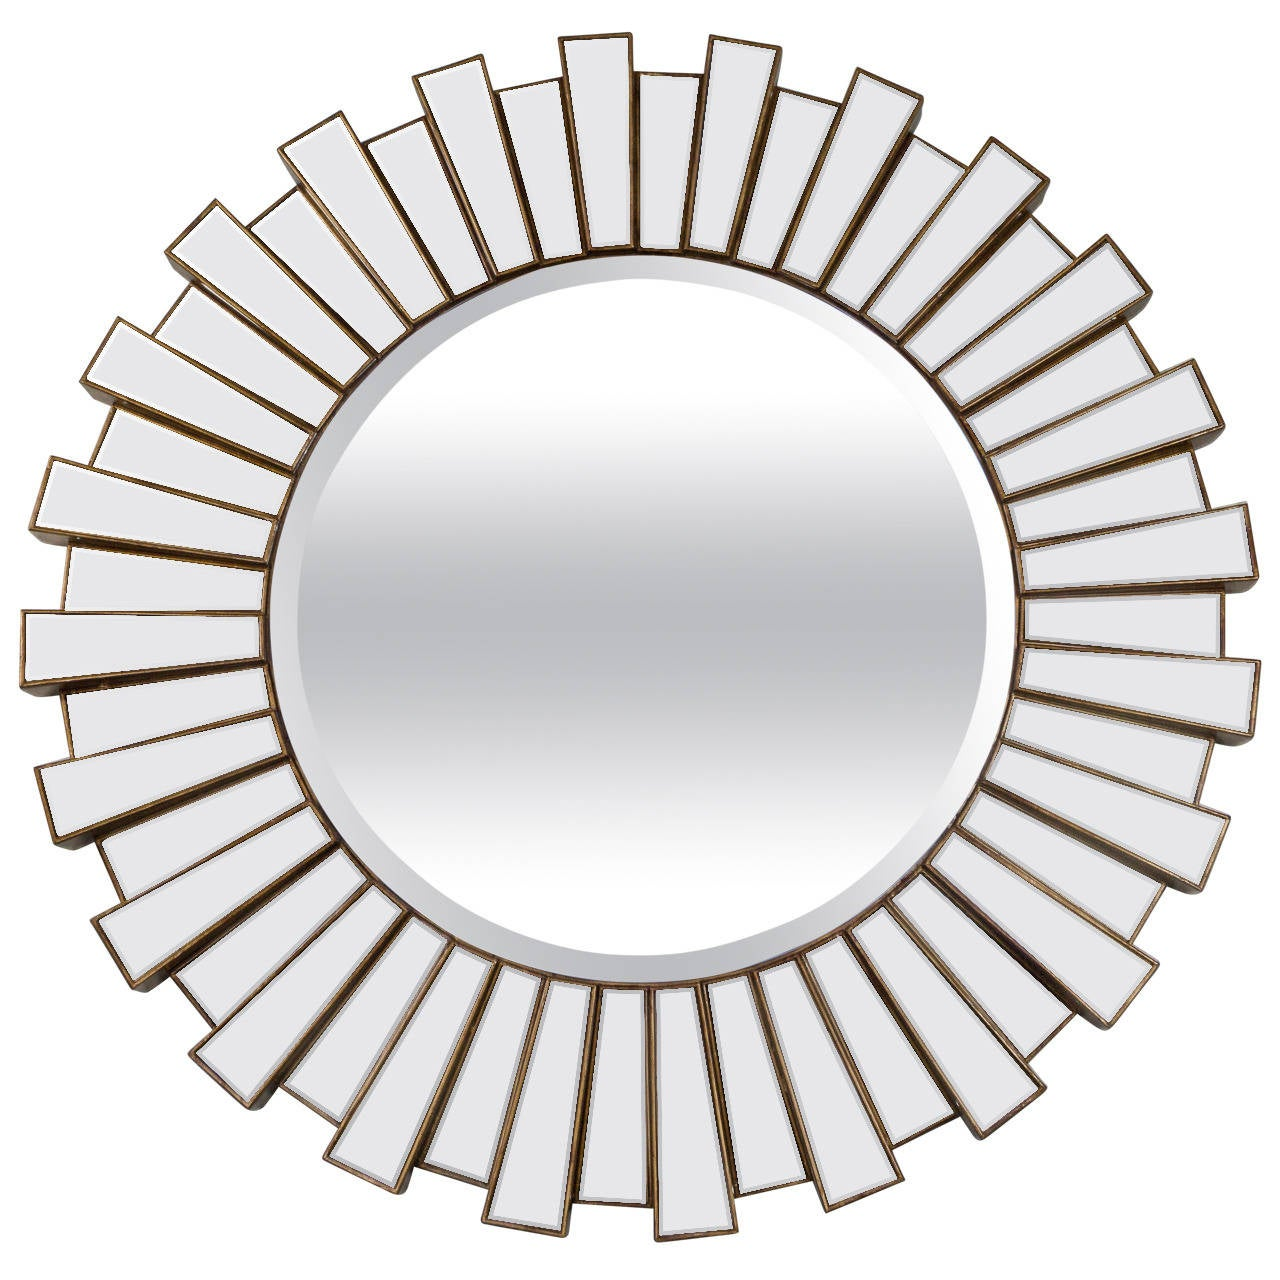 Large round sunburst bevel mirror at 1stdibs for Round mirror